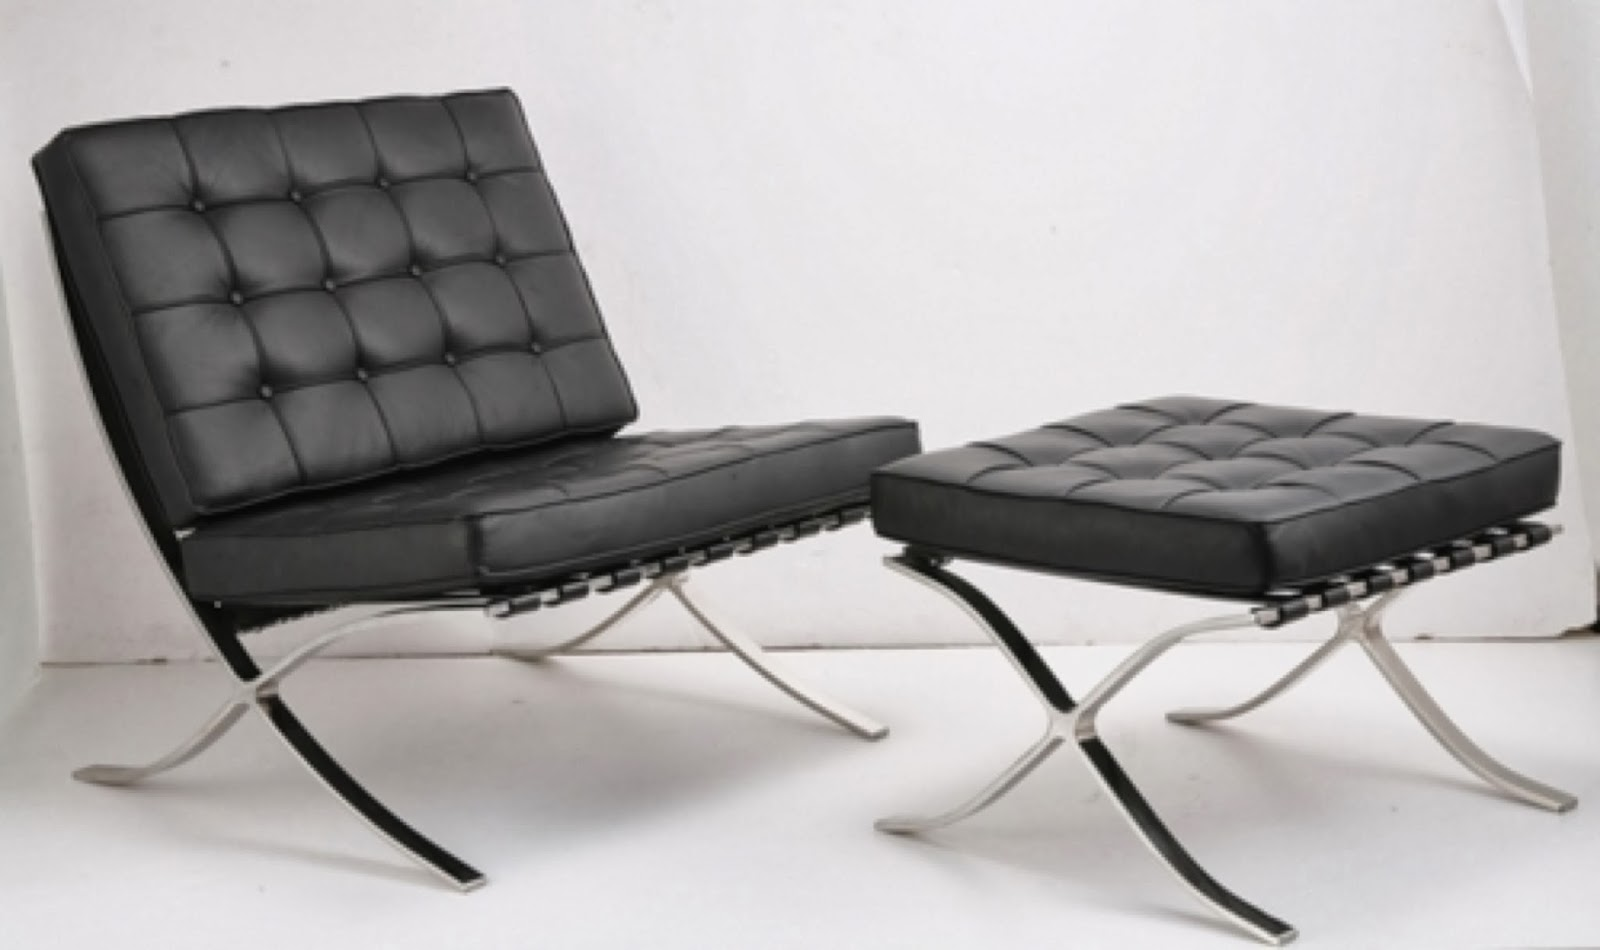 Bauhaus Furniture History Barcelona chair: a typical